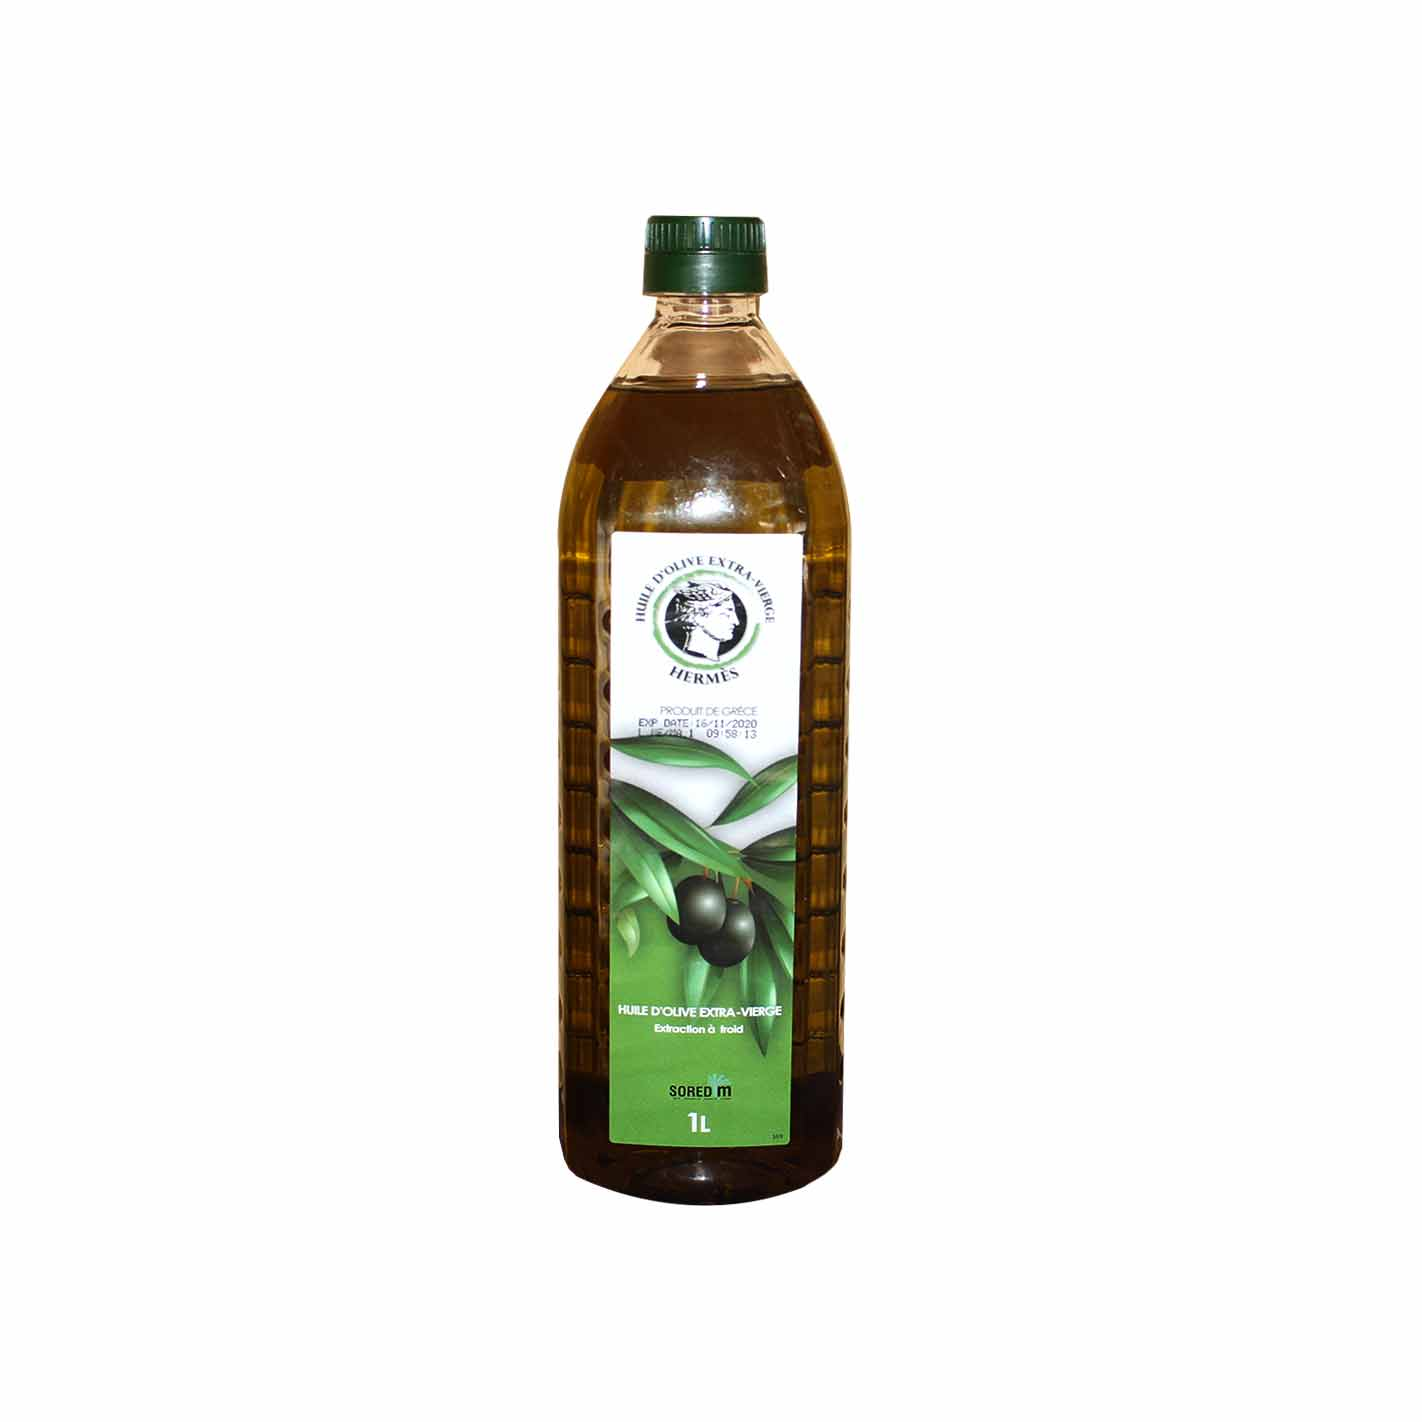 Herm�s - Huile d'olive extra-vierge - 1 L